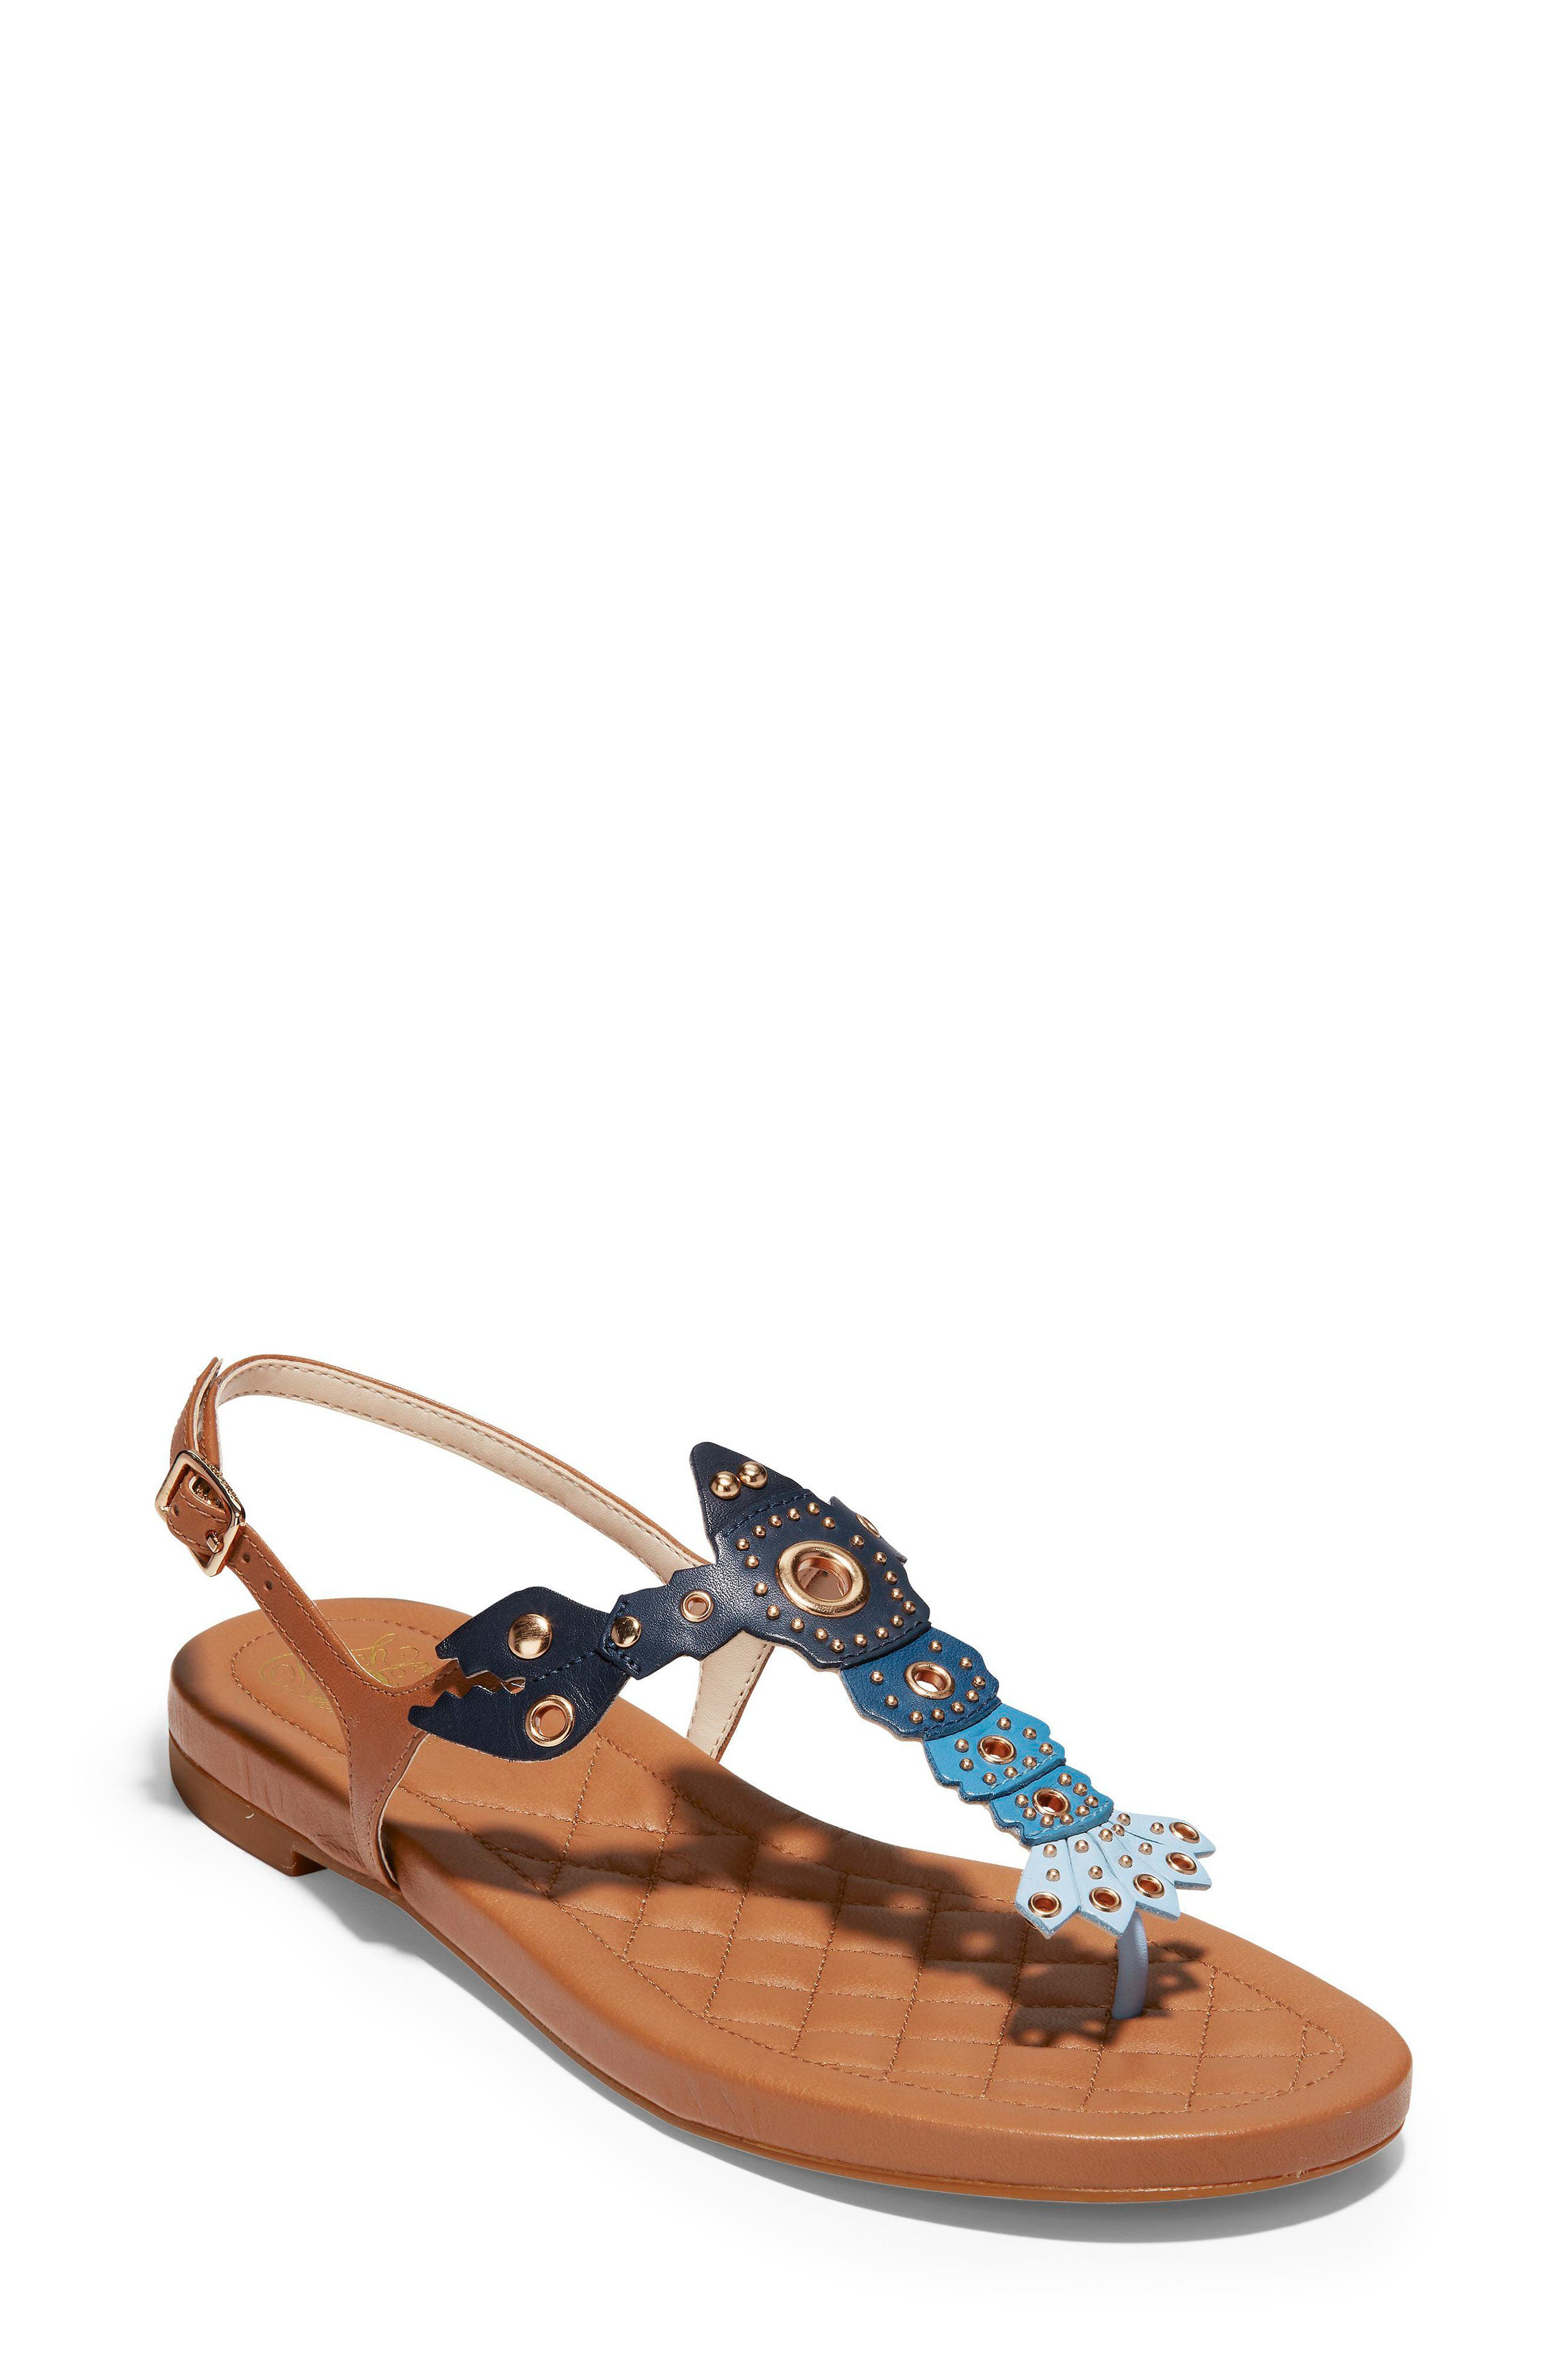 Pinch Lobster Sandal,                             Main thumbnail 1, color,                             NAVY MULTI LEATHER